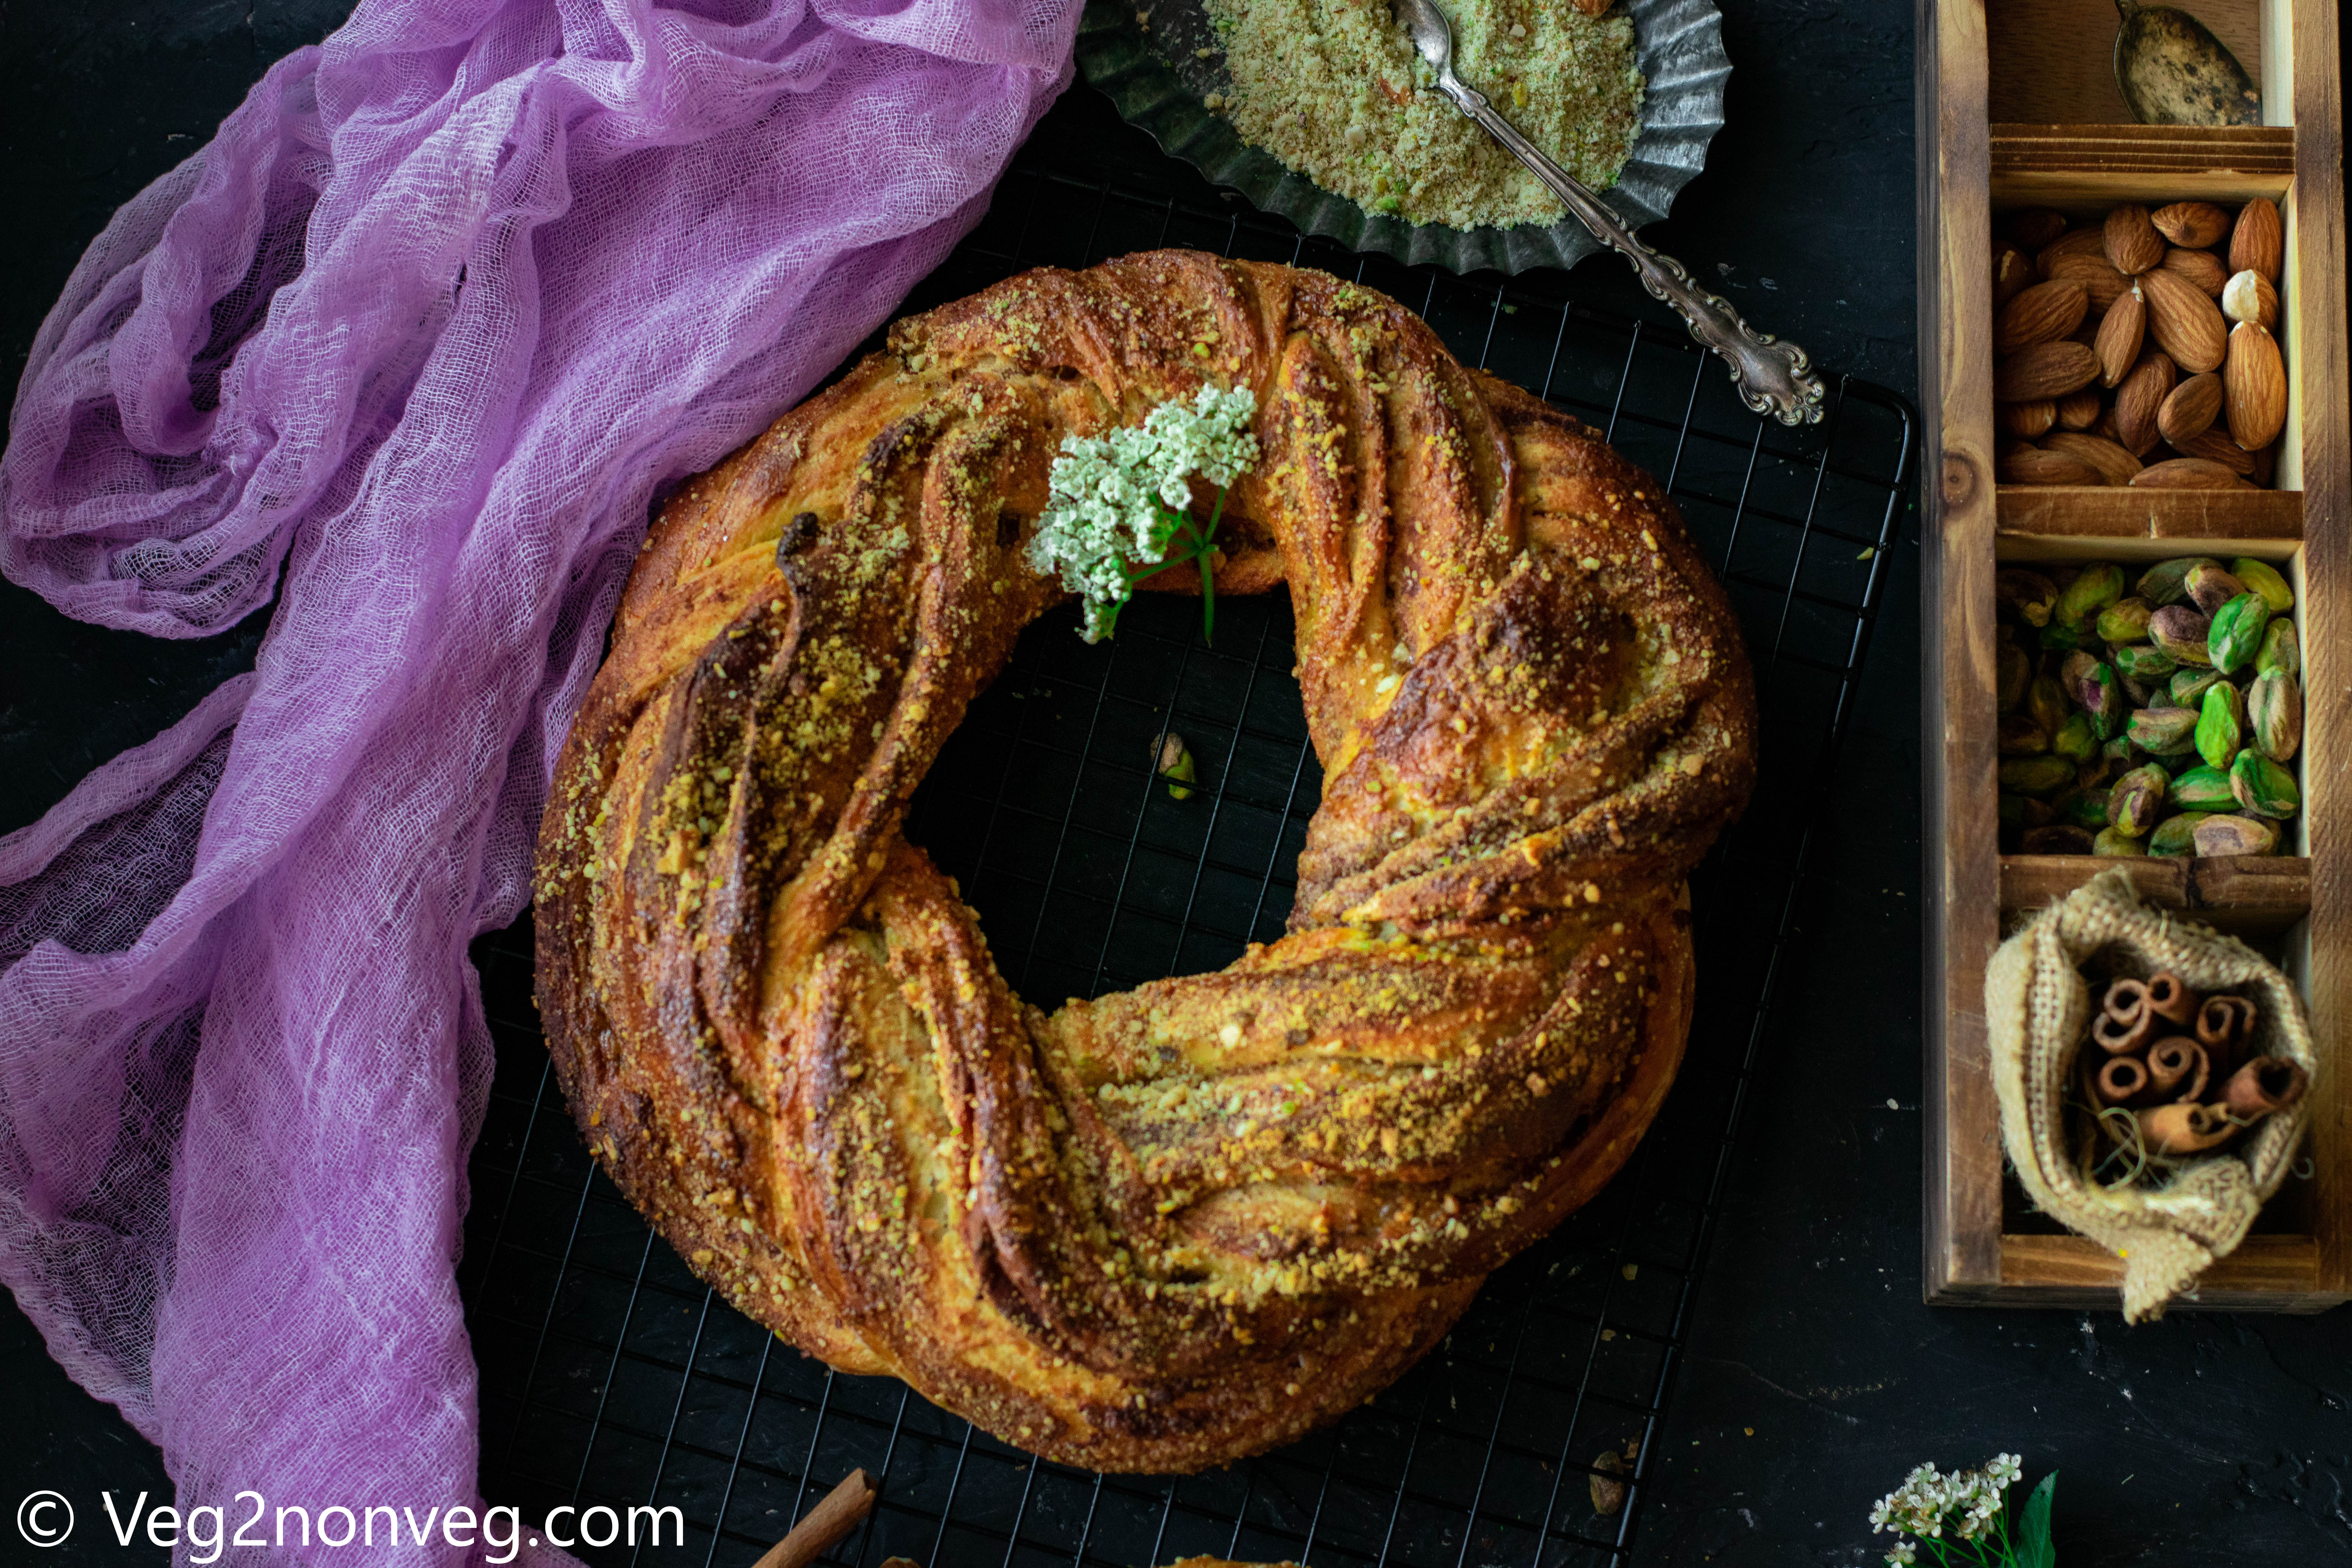 Cinnamon and Nuts filled Braided Bread